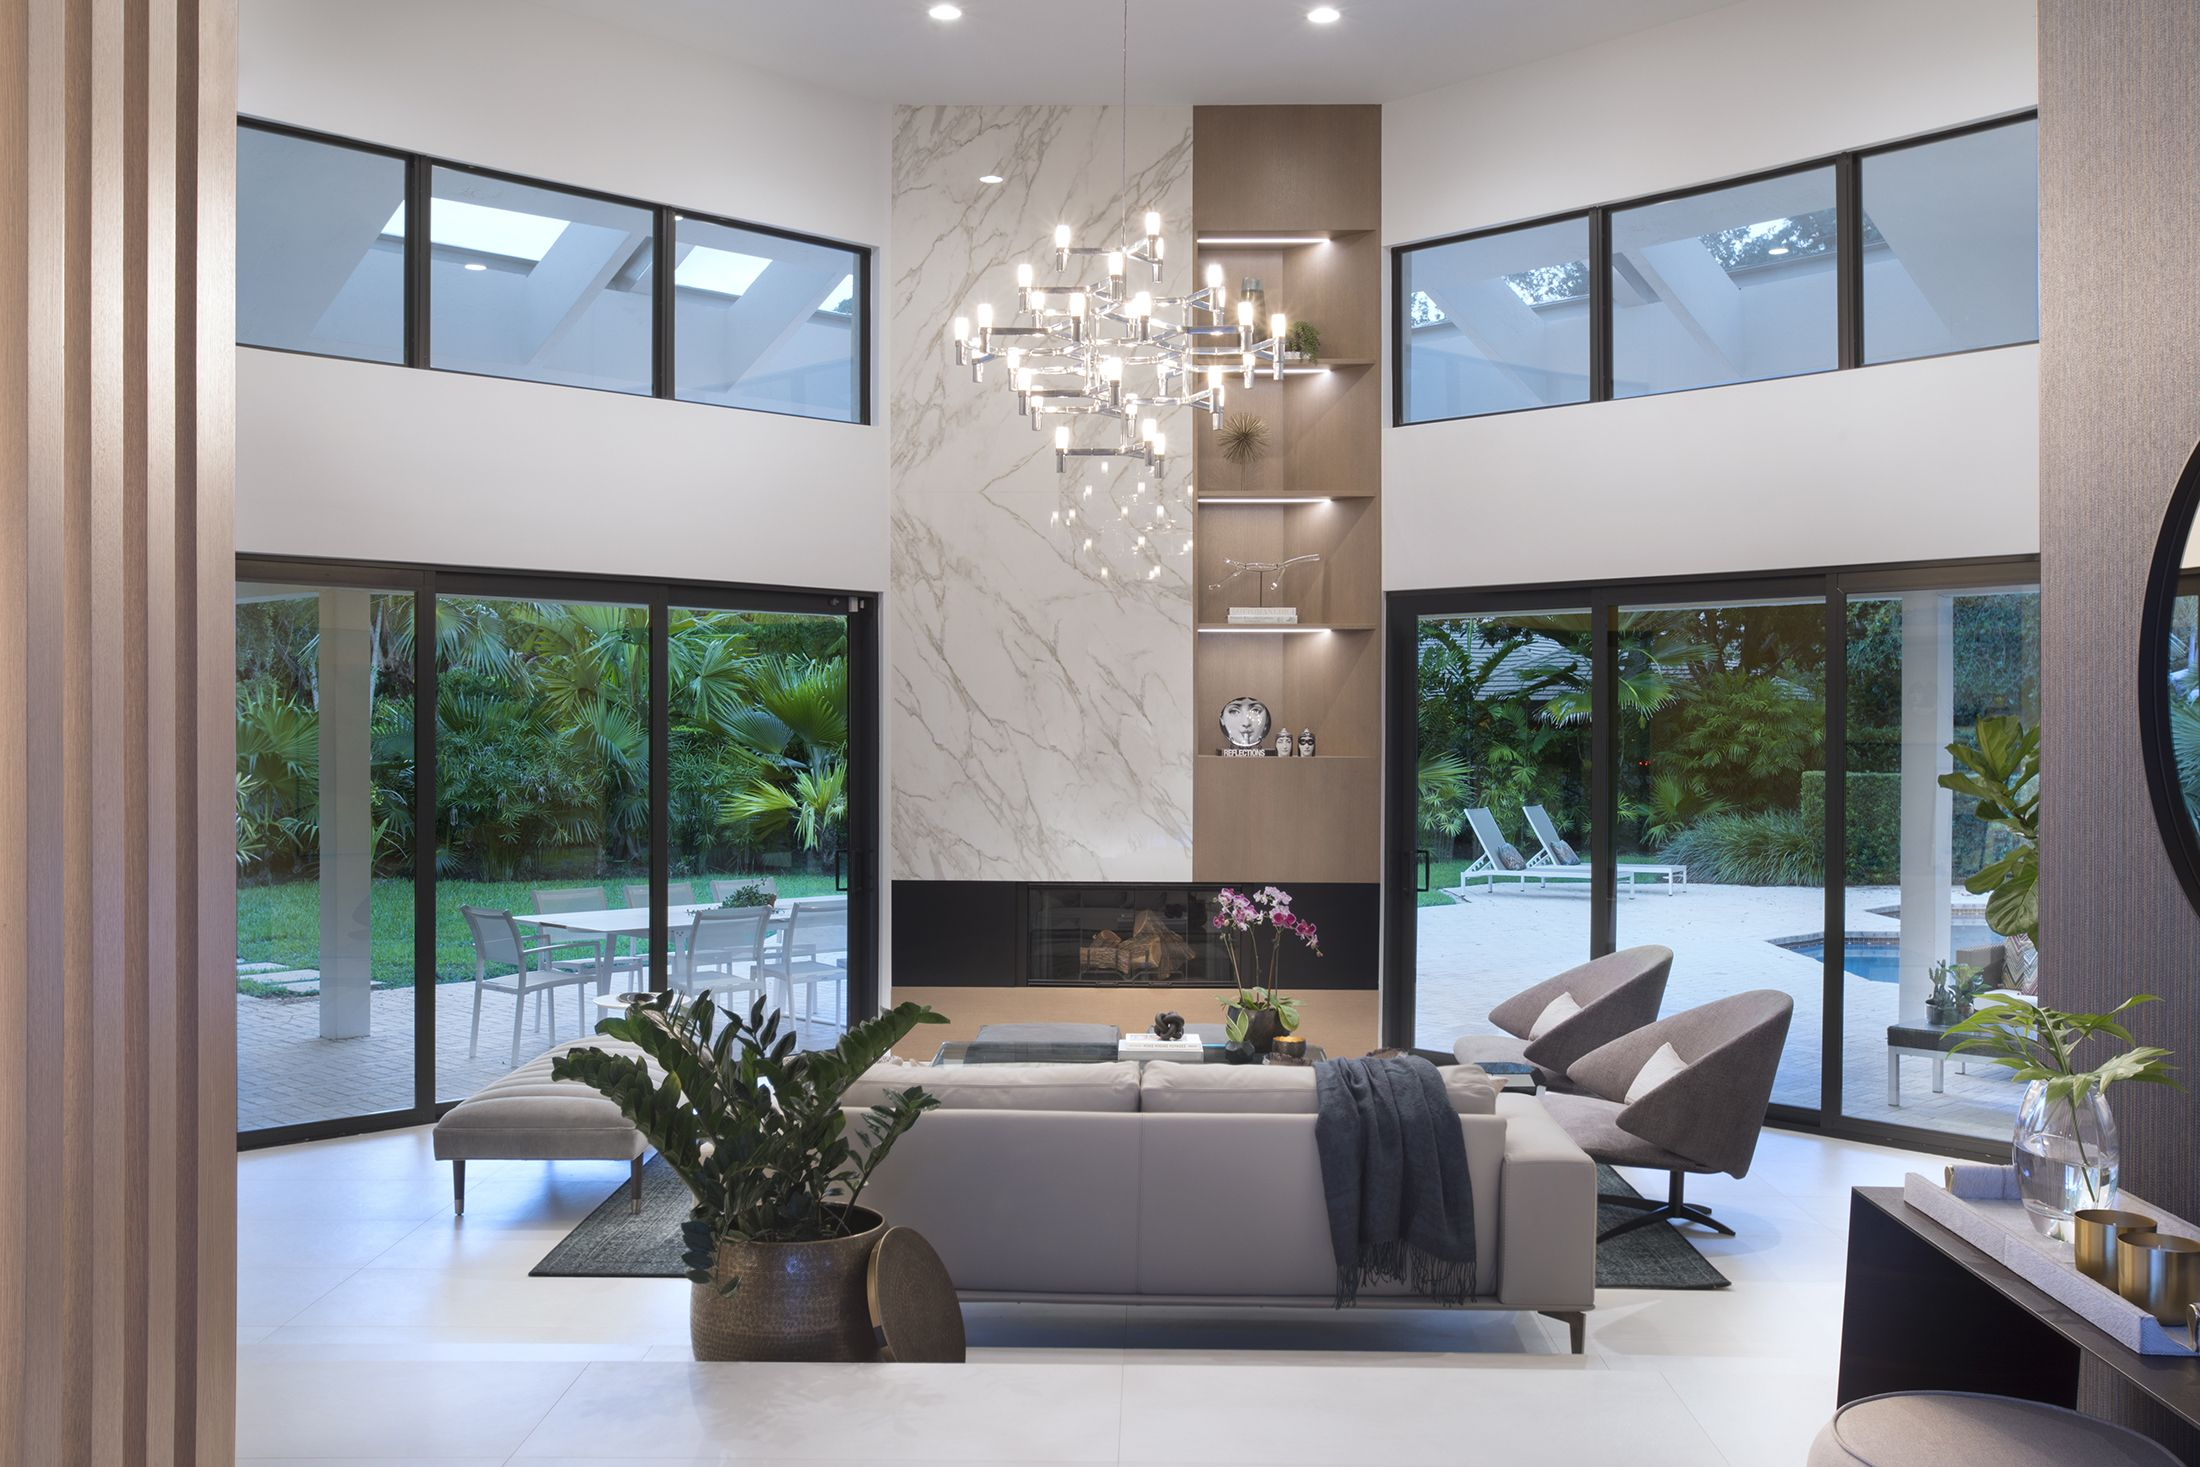 Cocoplum Contemporary Oasis   Residential Interior Design Project In Coral  Gables, Florida #LivingRoomDesign #LivingRoom #MiamiInteriorDesign